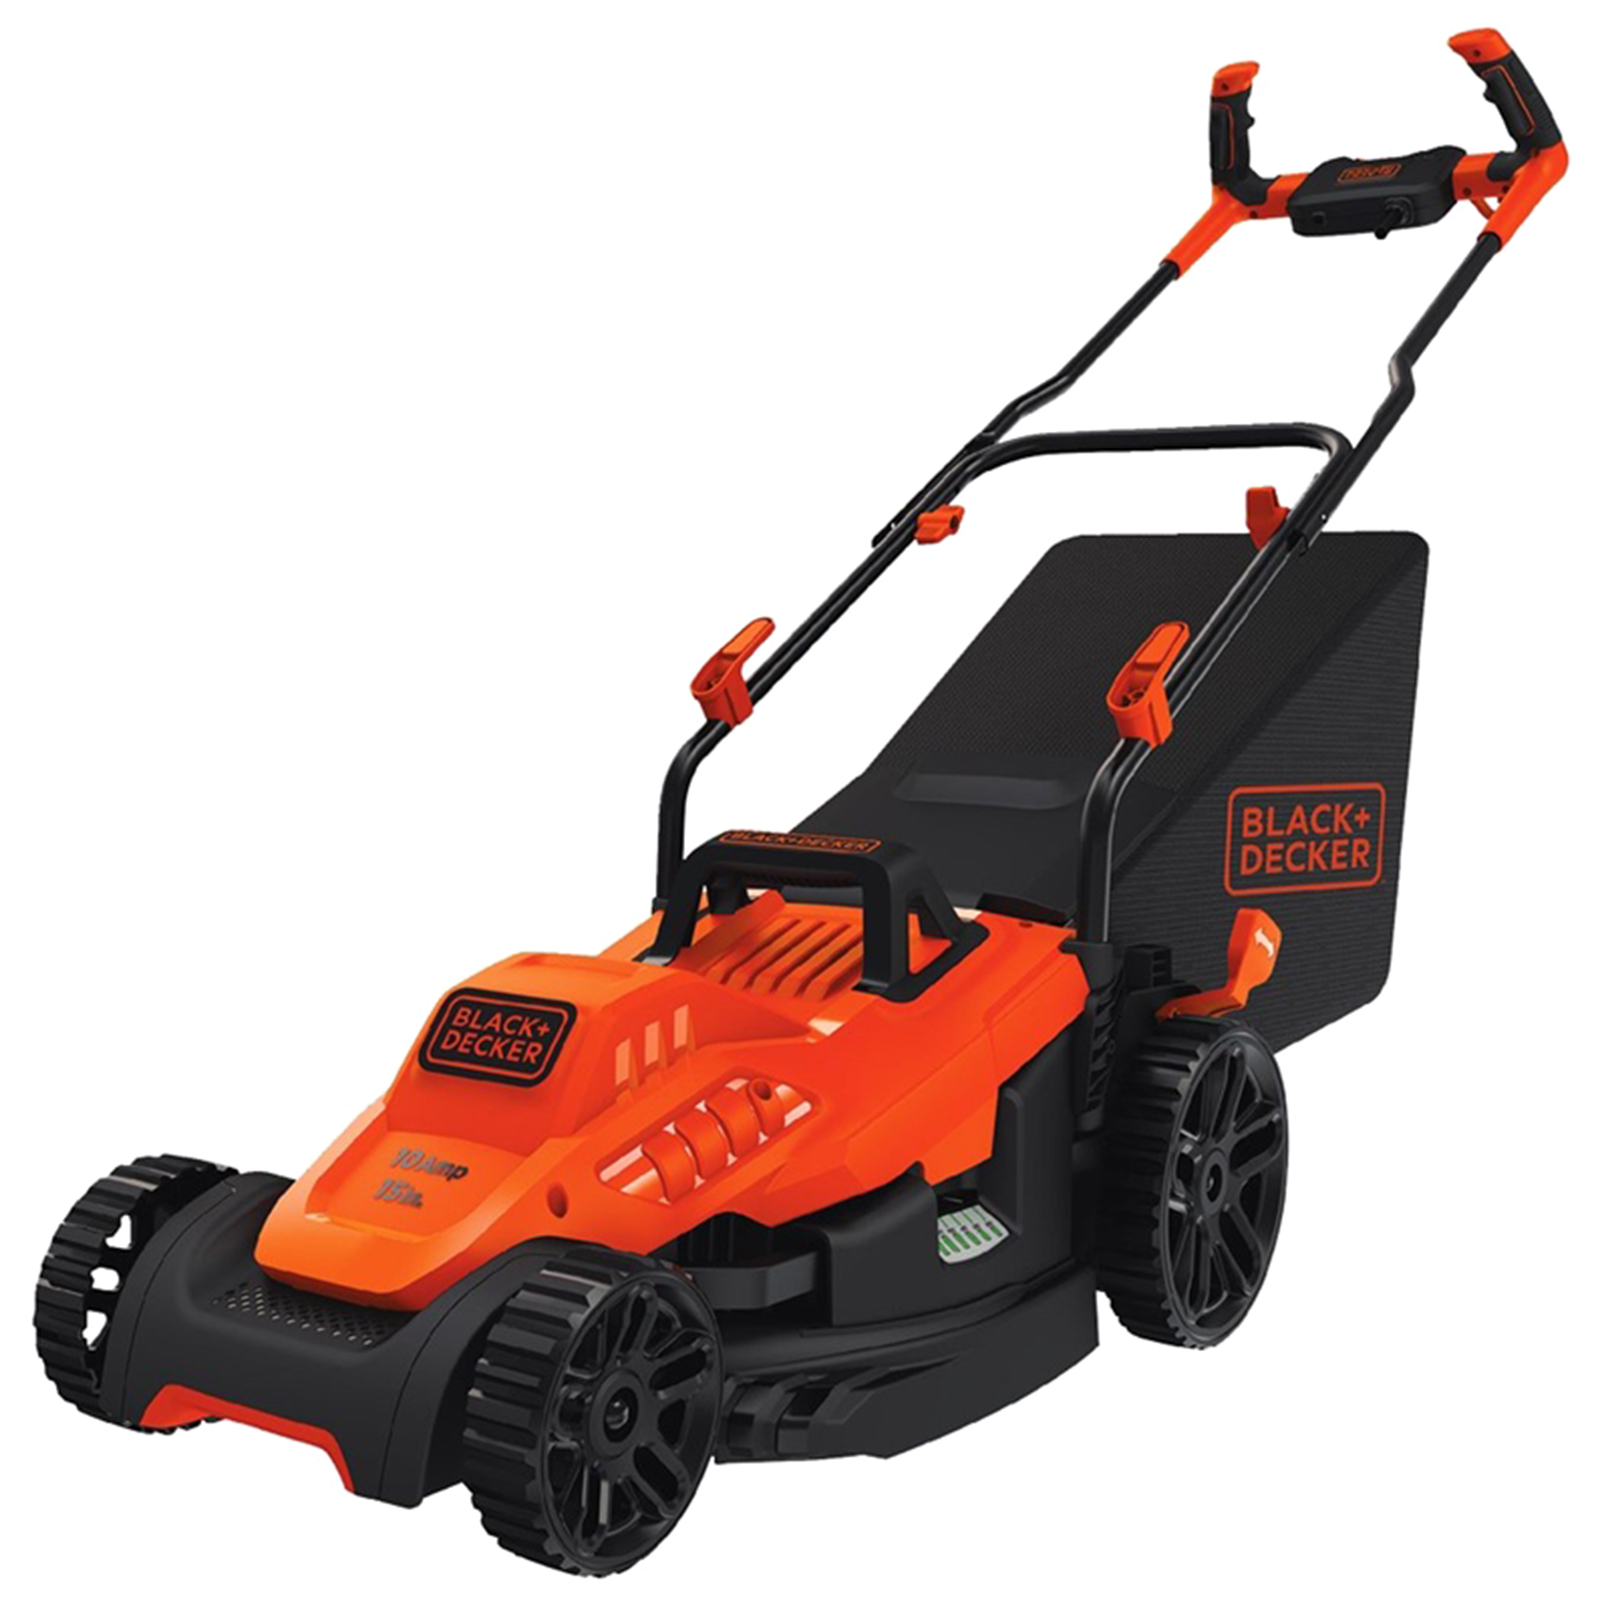 medium resolution of find the best electric lawn mowers from top brands at sears scott s lawn mower wiring diagram black amp decker lawn mower wiring diagram